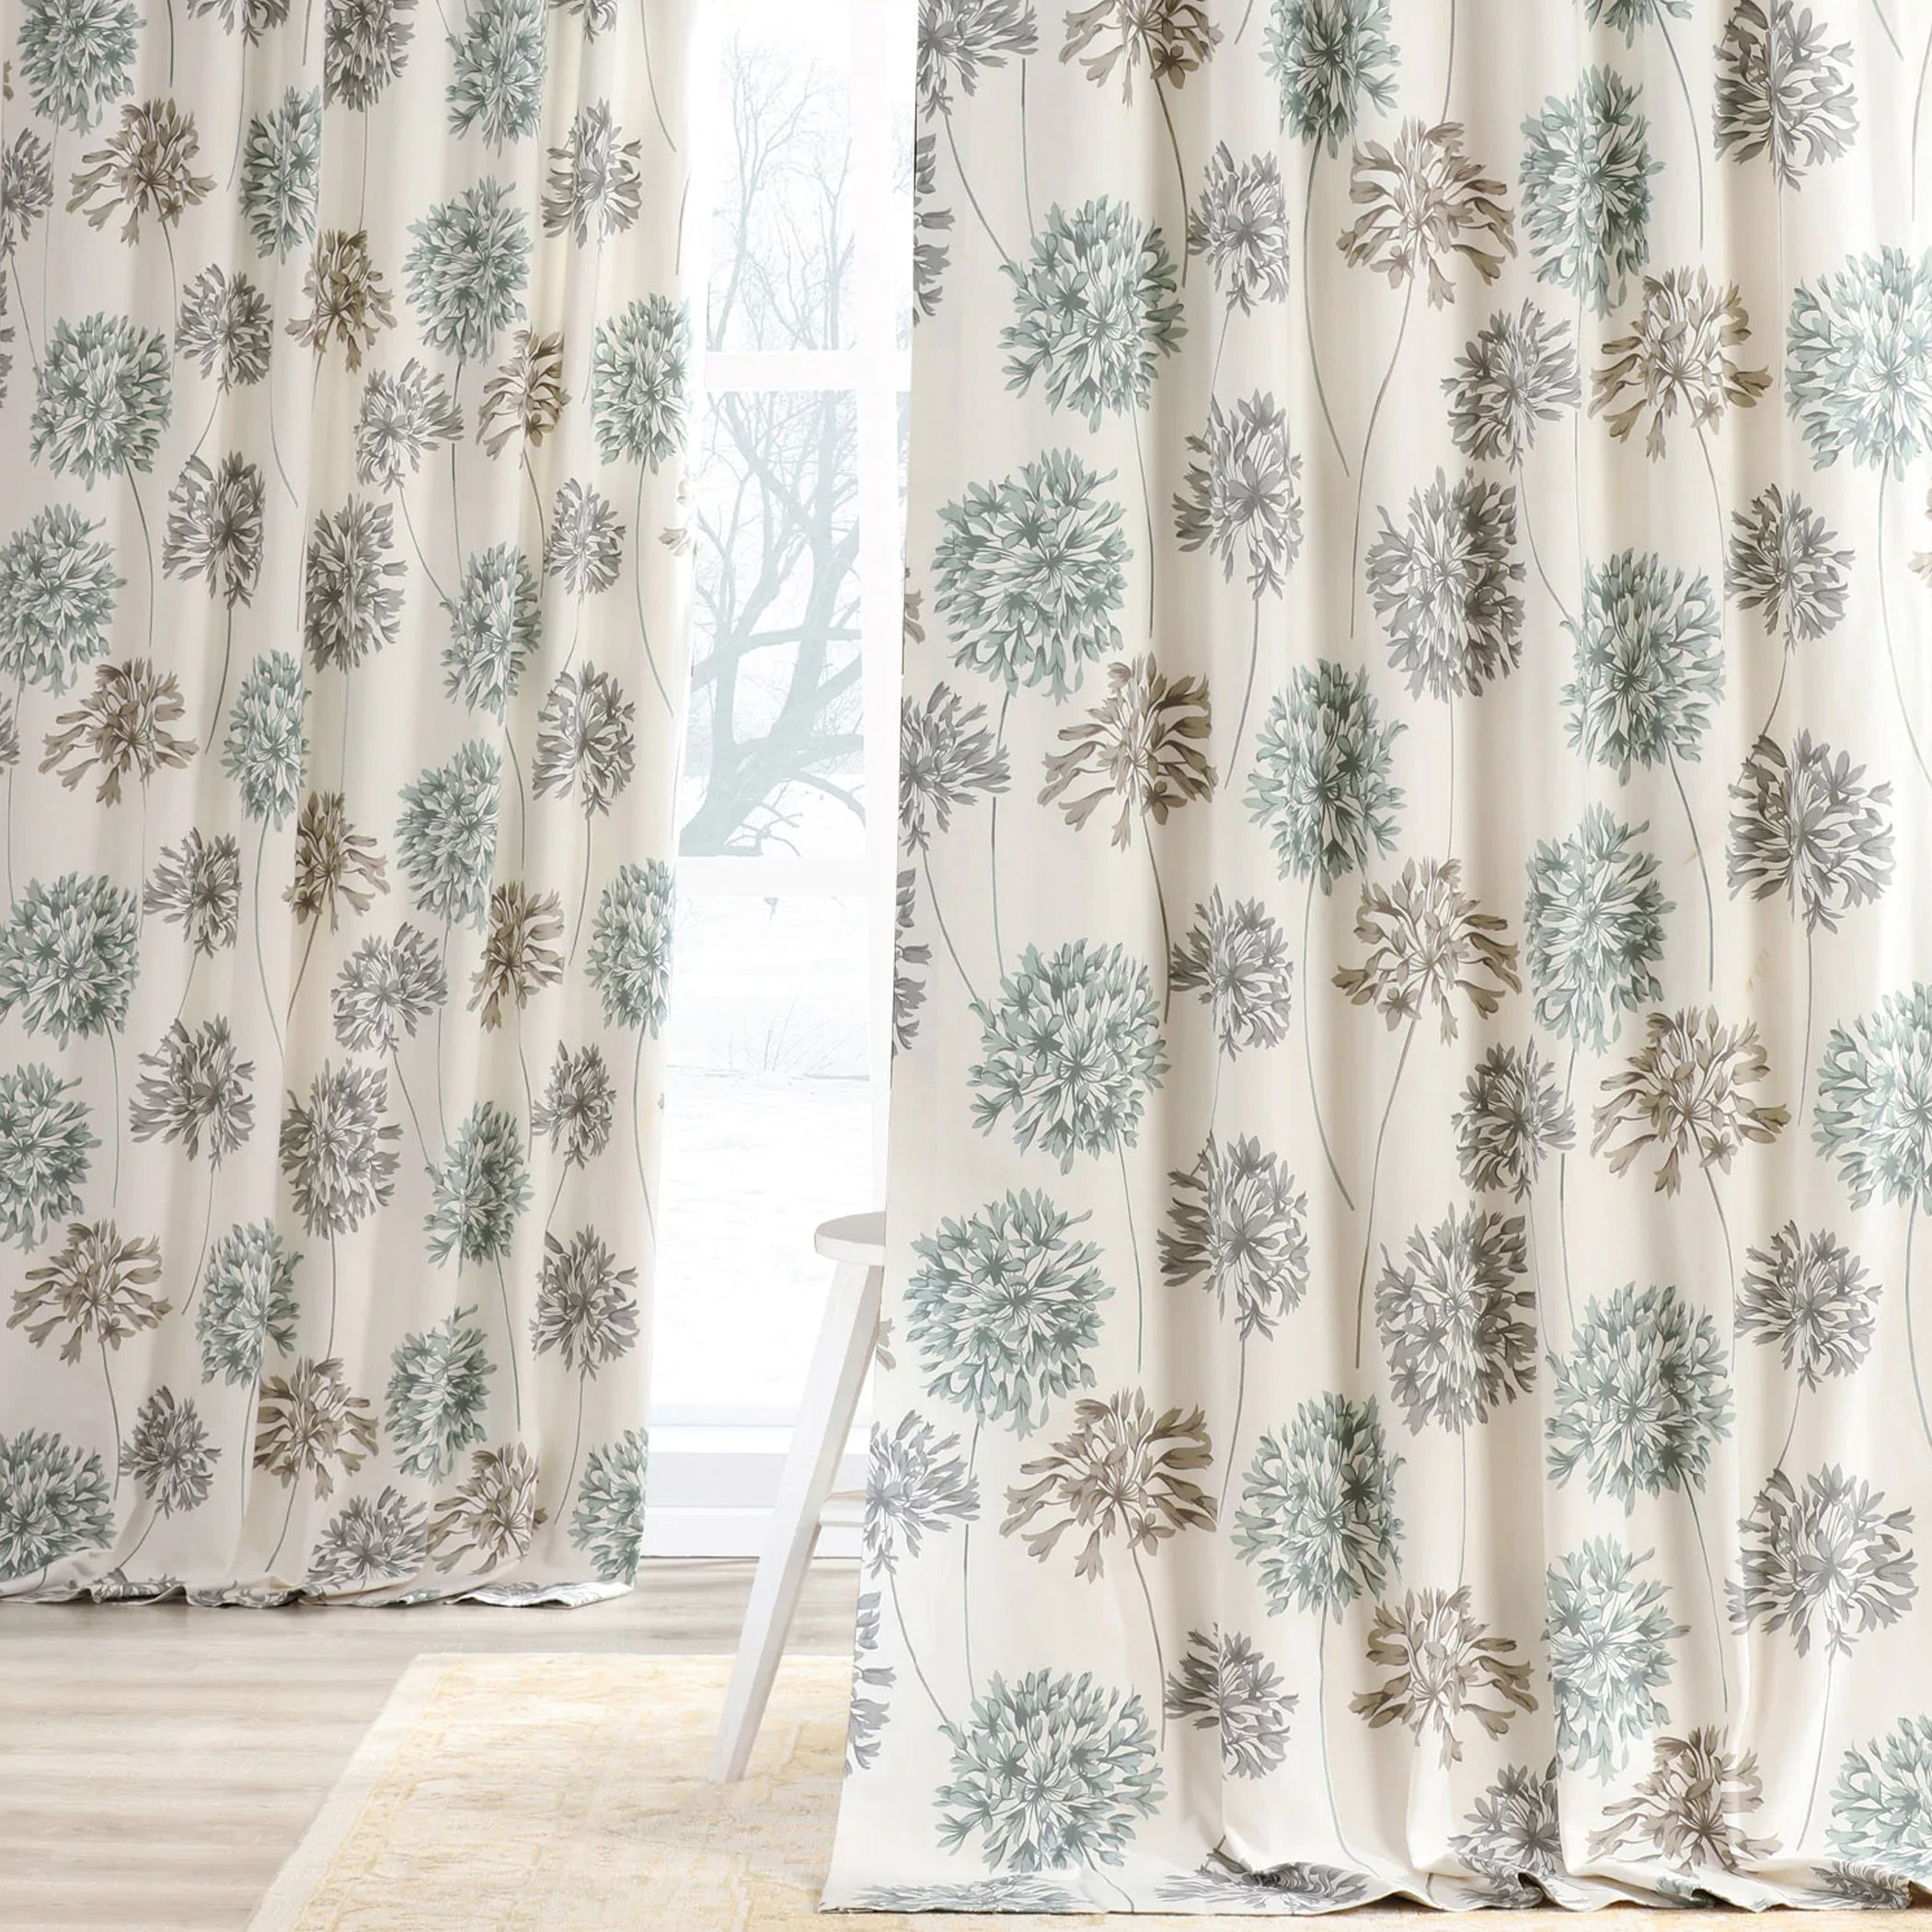 Picking The Perfect Pattern For Your New Curtains Is Just As Important As Picking The Right Color And In 2020 Half Price Drapes Printed Cotton Curtain Floral Curtains